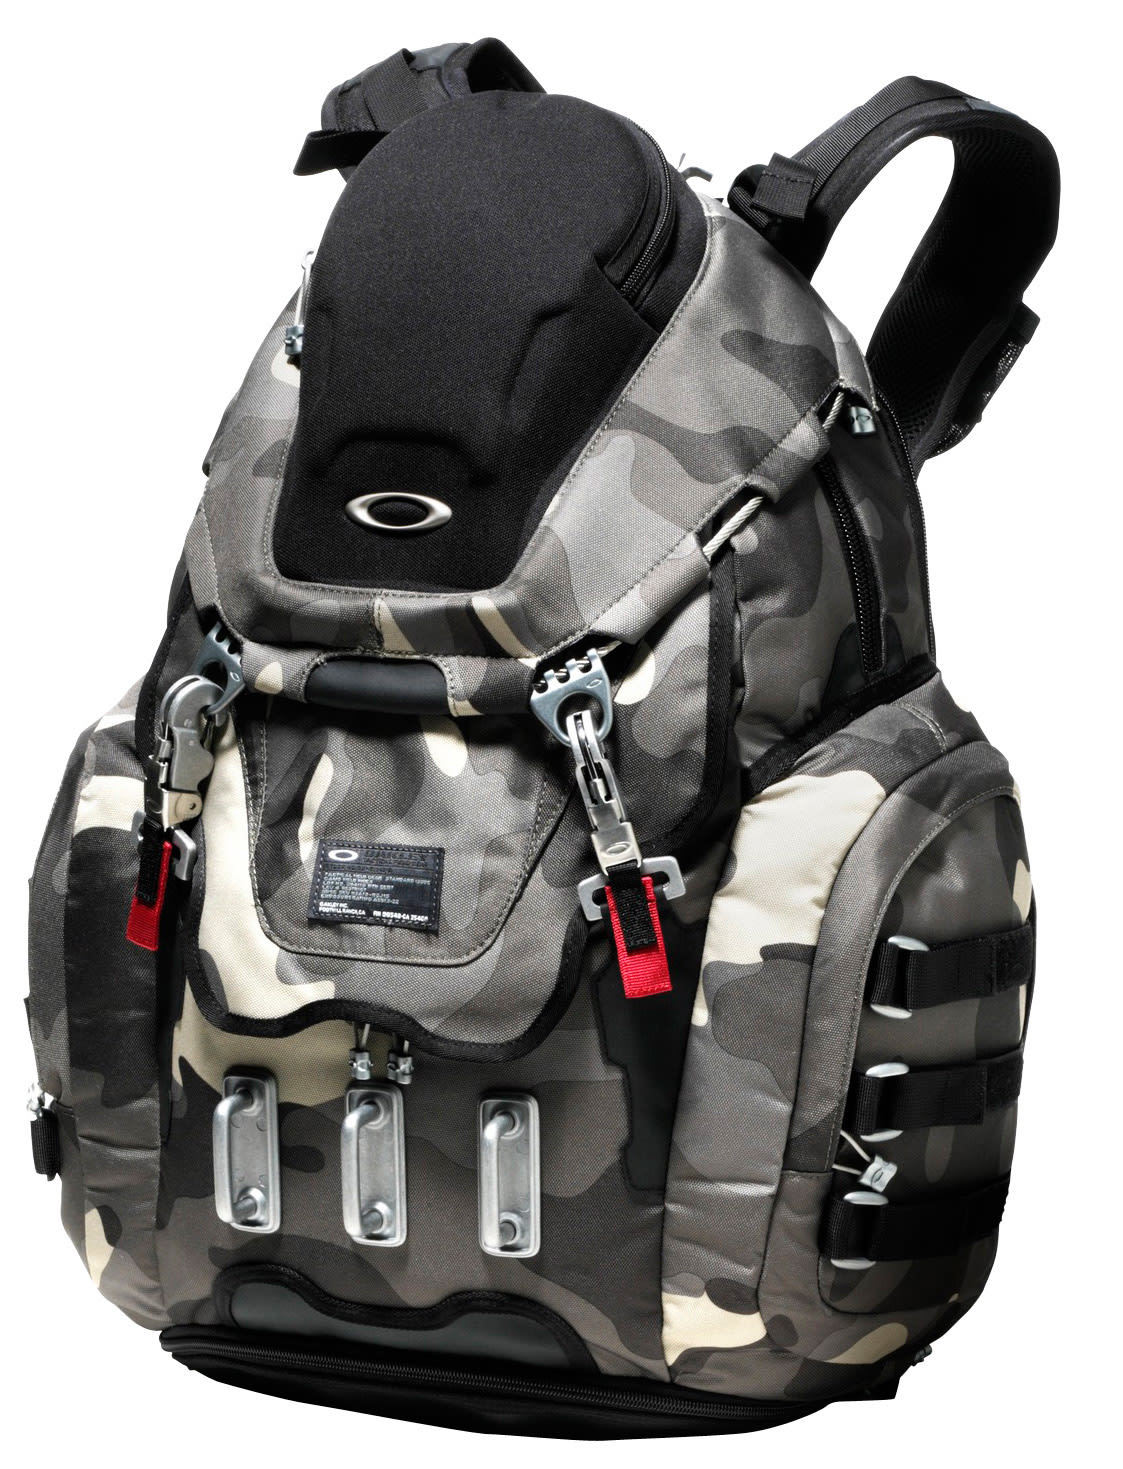 On Sale Oakley Kitchen Sink Backpack Up To 55% Off